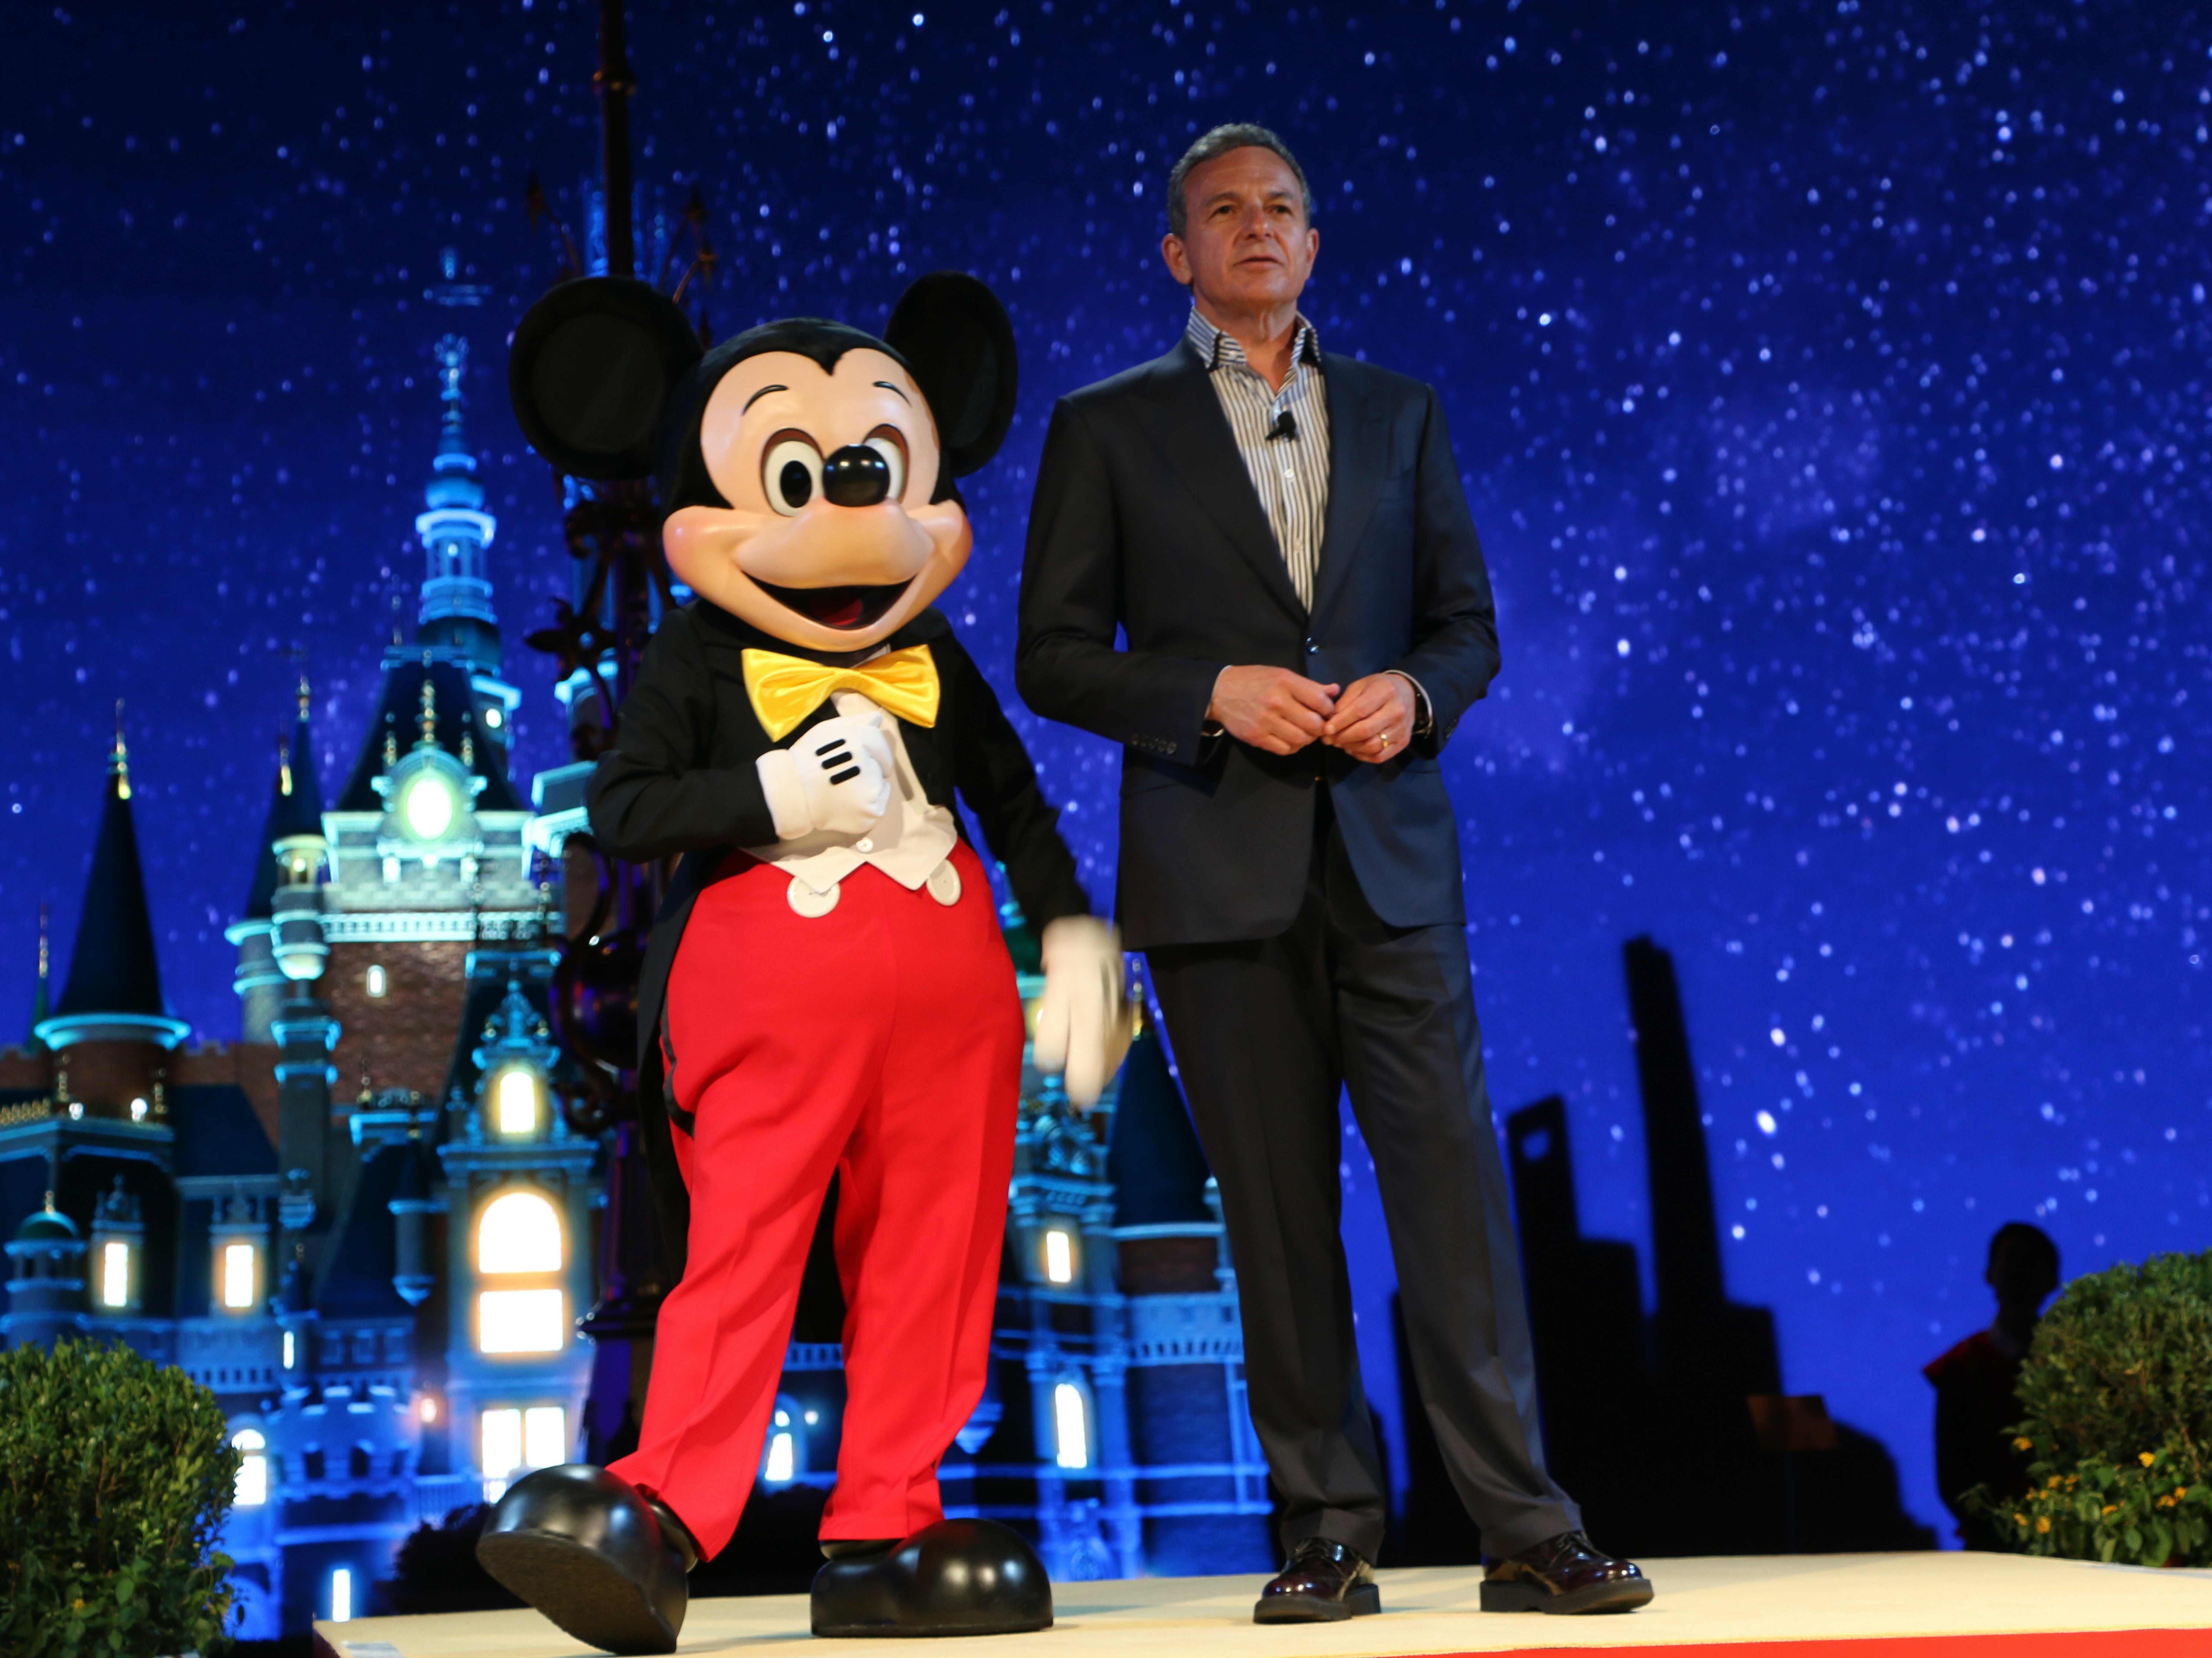 SHANGHAI, CHINA - JULY 15: (CHINA OUT) Robert A. Iger, Chairman and Chief Executive Officer of The Walt Disney Company, attends the unveilling ceremony of six themed parks of Shanghai Disney Resort at Shanghai Expo Center on July 15, 2015 in Shanghai, China. As the first Disney resort in China mainland, Shanghai Disney Resort includes the Magic Kingdom-style theme park, two themed hotels with a total of 1,220 rooms, a retail, dining and entertainment complex featuring a Broadway-style theater, as well as an outdoor recreational area. The Resort will open officially in 2016. (Photo by VCG/VCG via Getty Images)